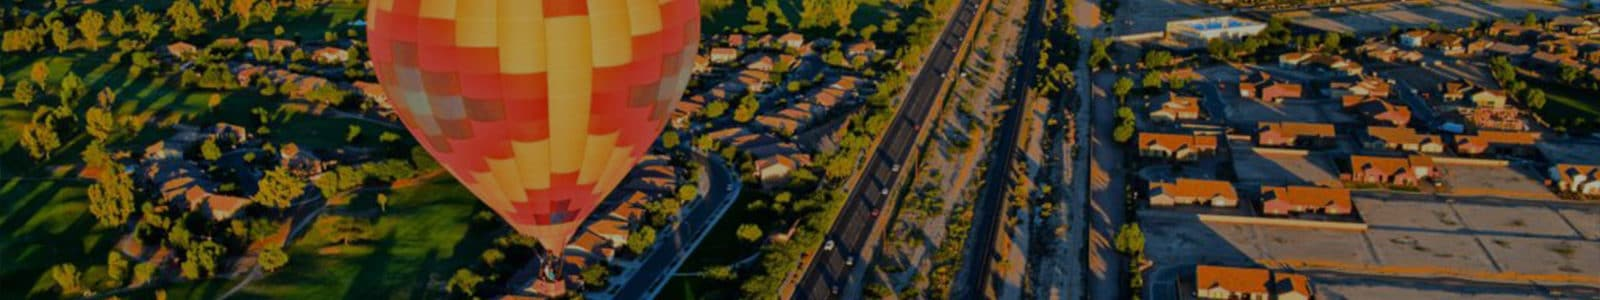 Aztec-style red and yellow hot air balloon above suburbs at evening